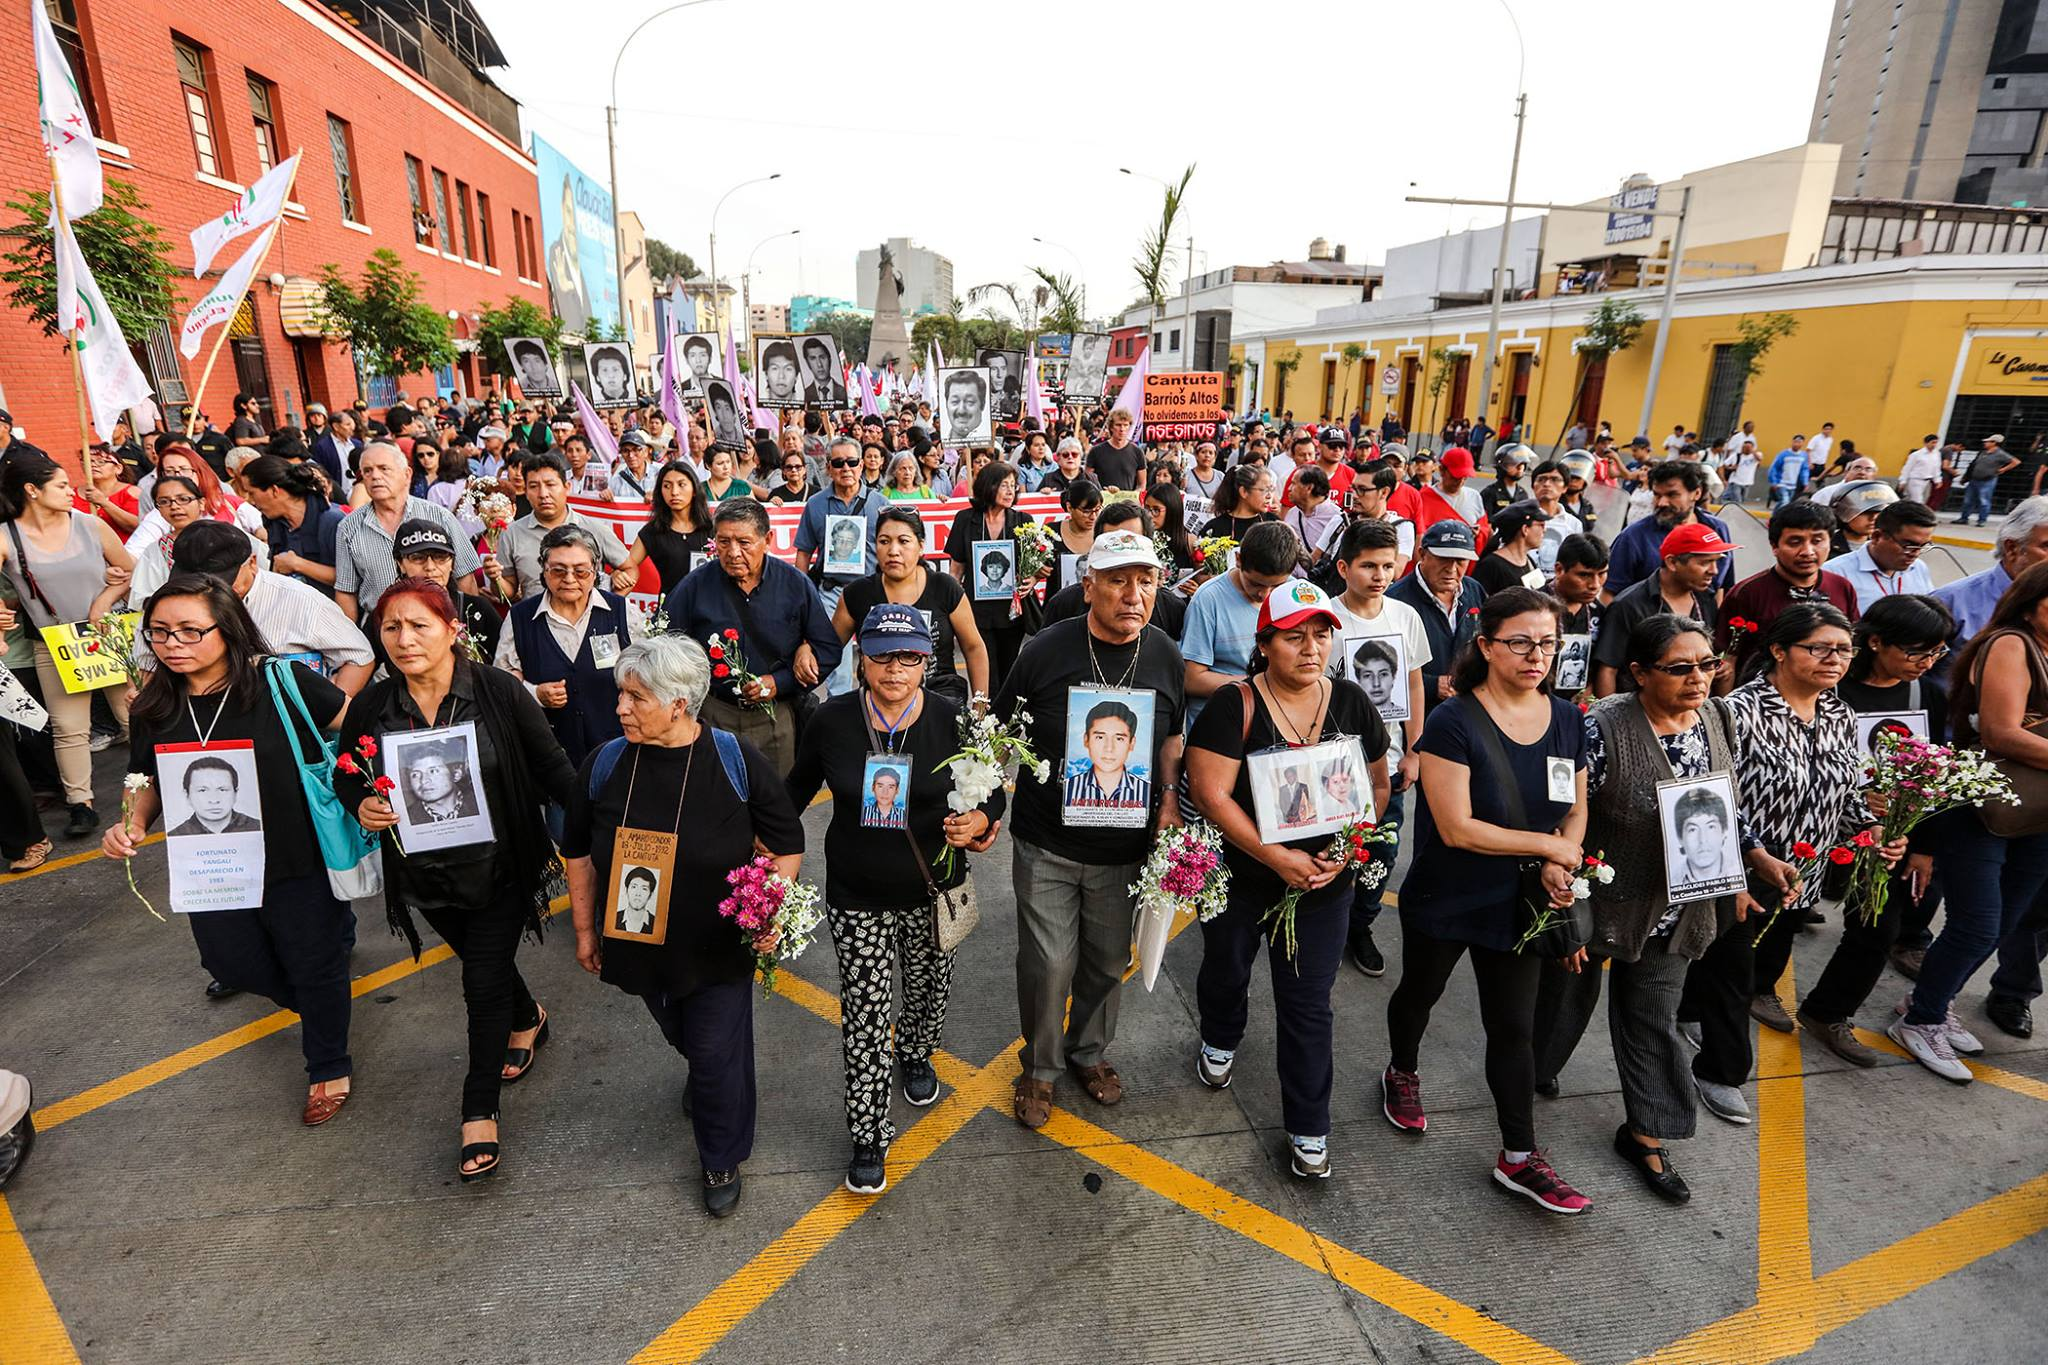 A protest march in Lima